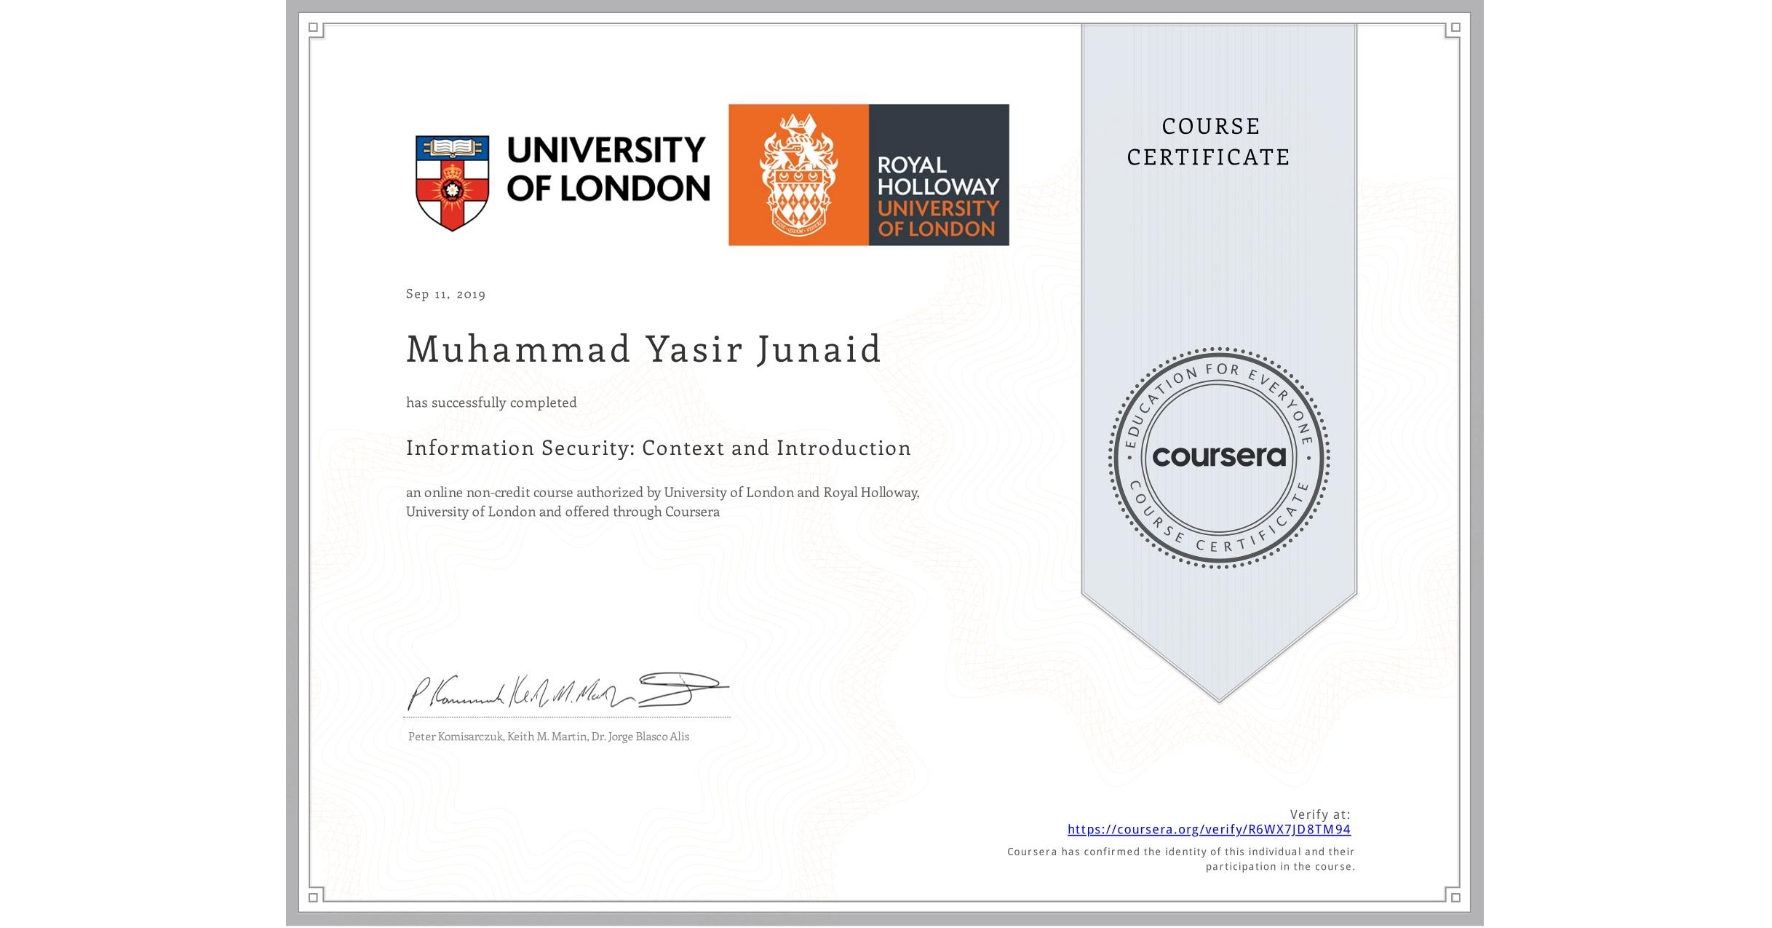 View certificate for Muhammad Yasir Junaid, Information Security: Context and Introduction, an online non-credit course authorized by University of London & Royal Holloway, University of London and offered through Coursera